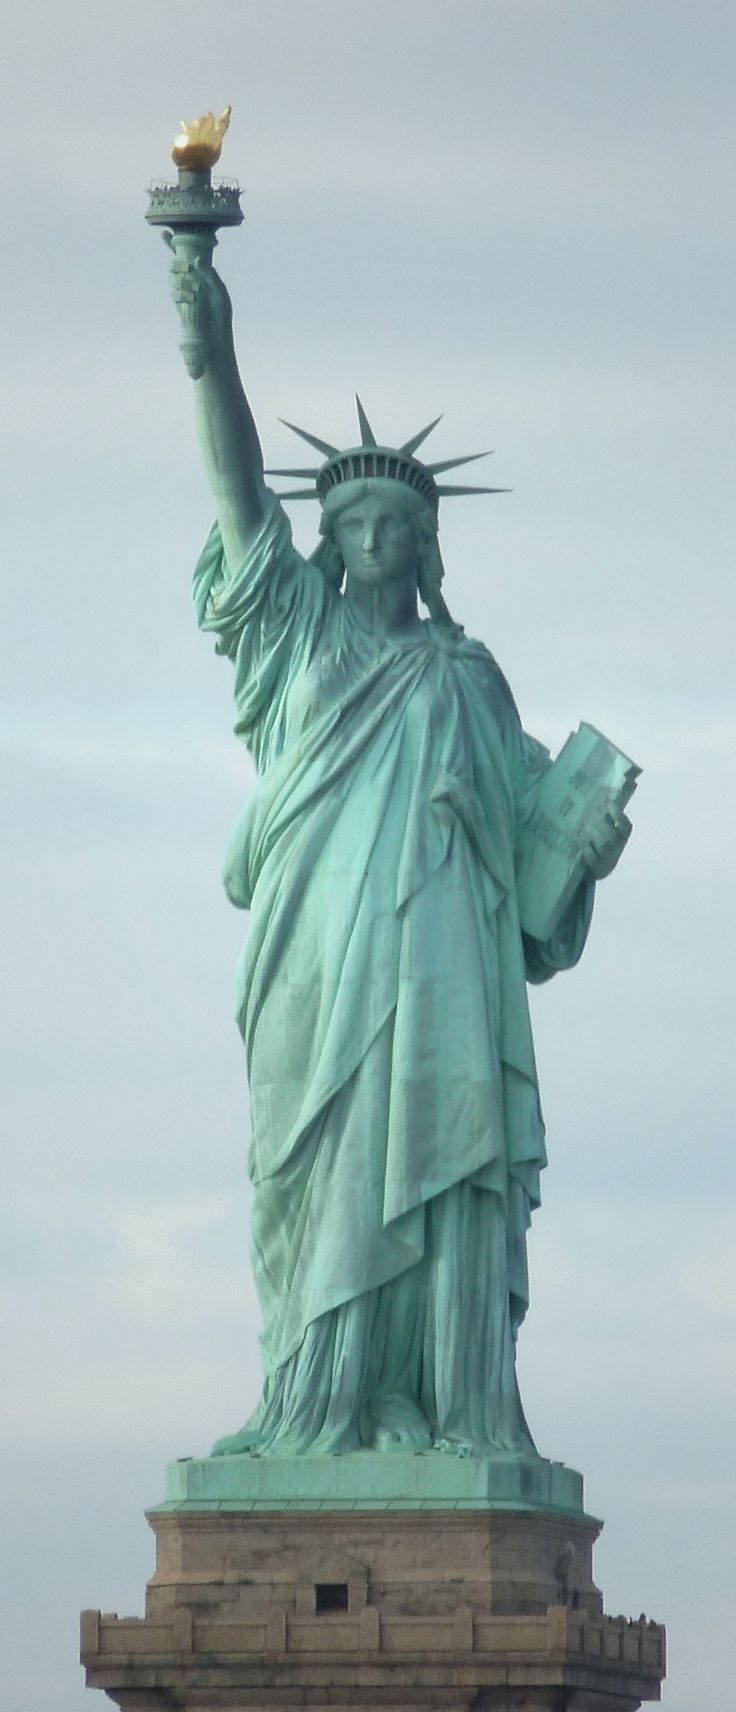 the statue of liberty is one of the most famous monuments in united states